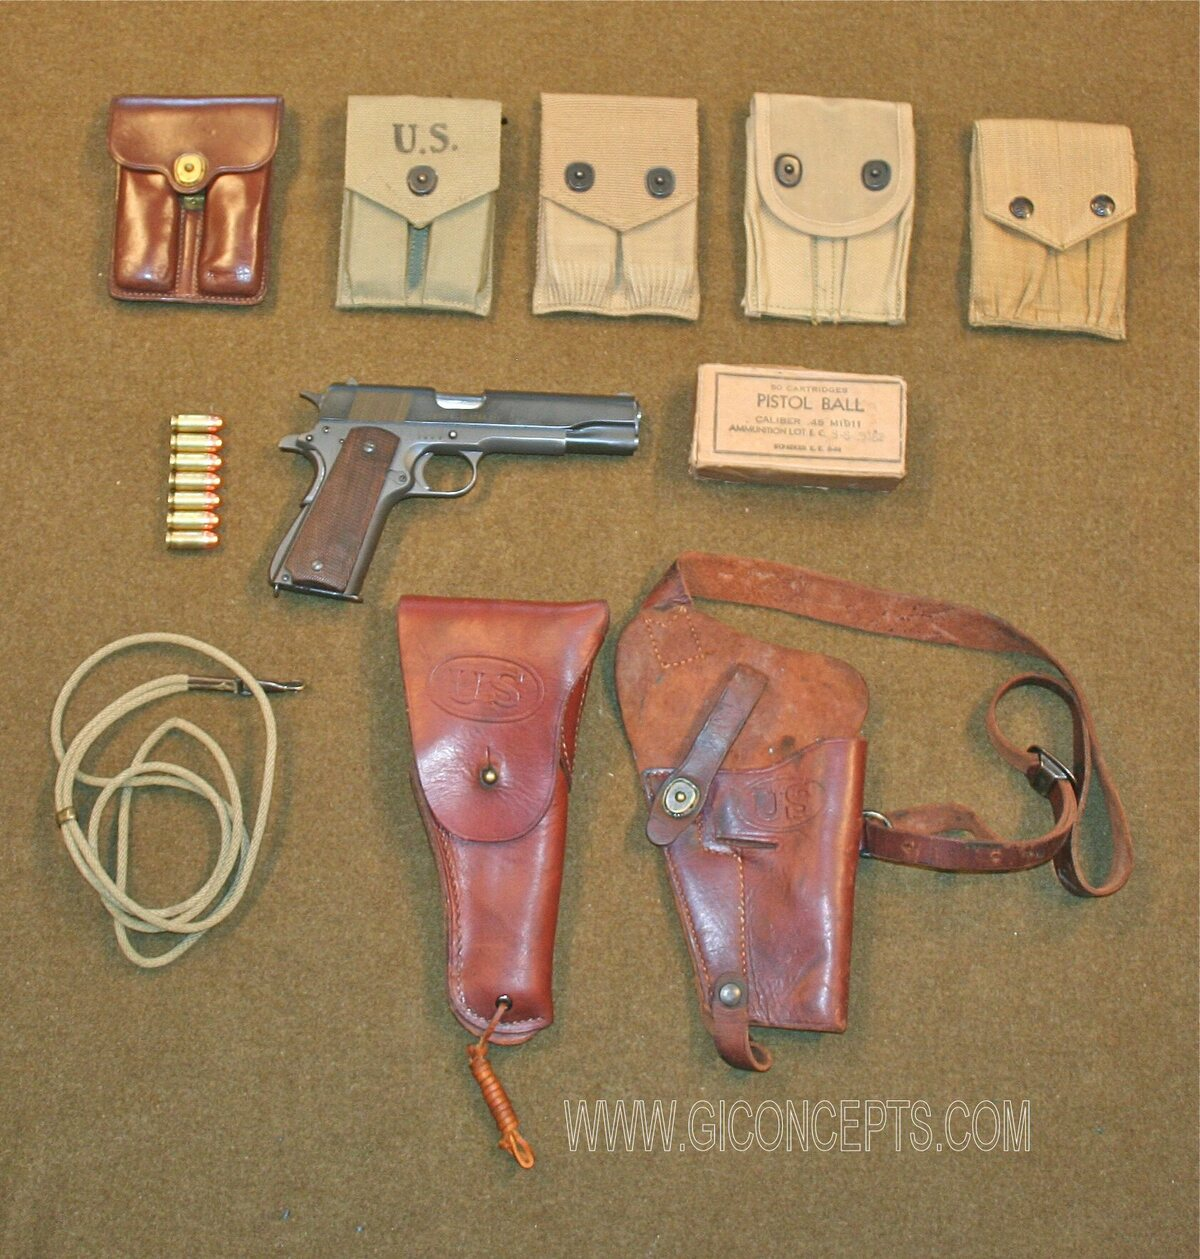 US M1911 .45 Automatic Pistol and Accessories